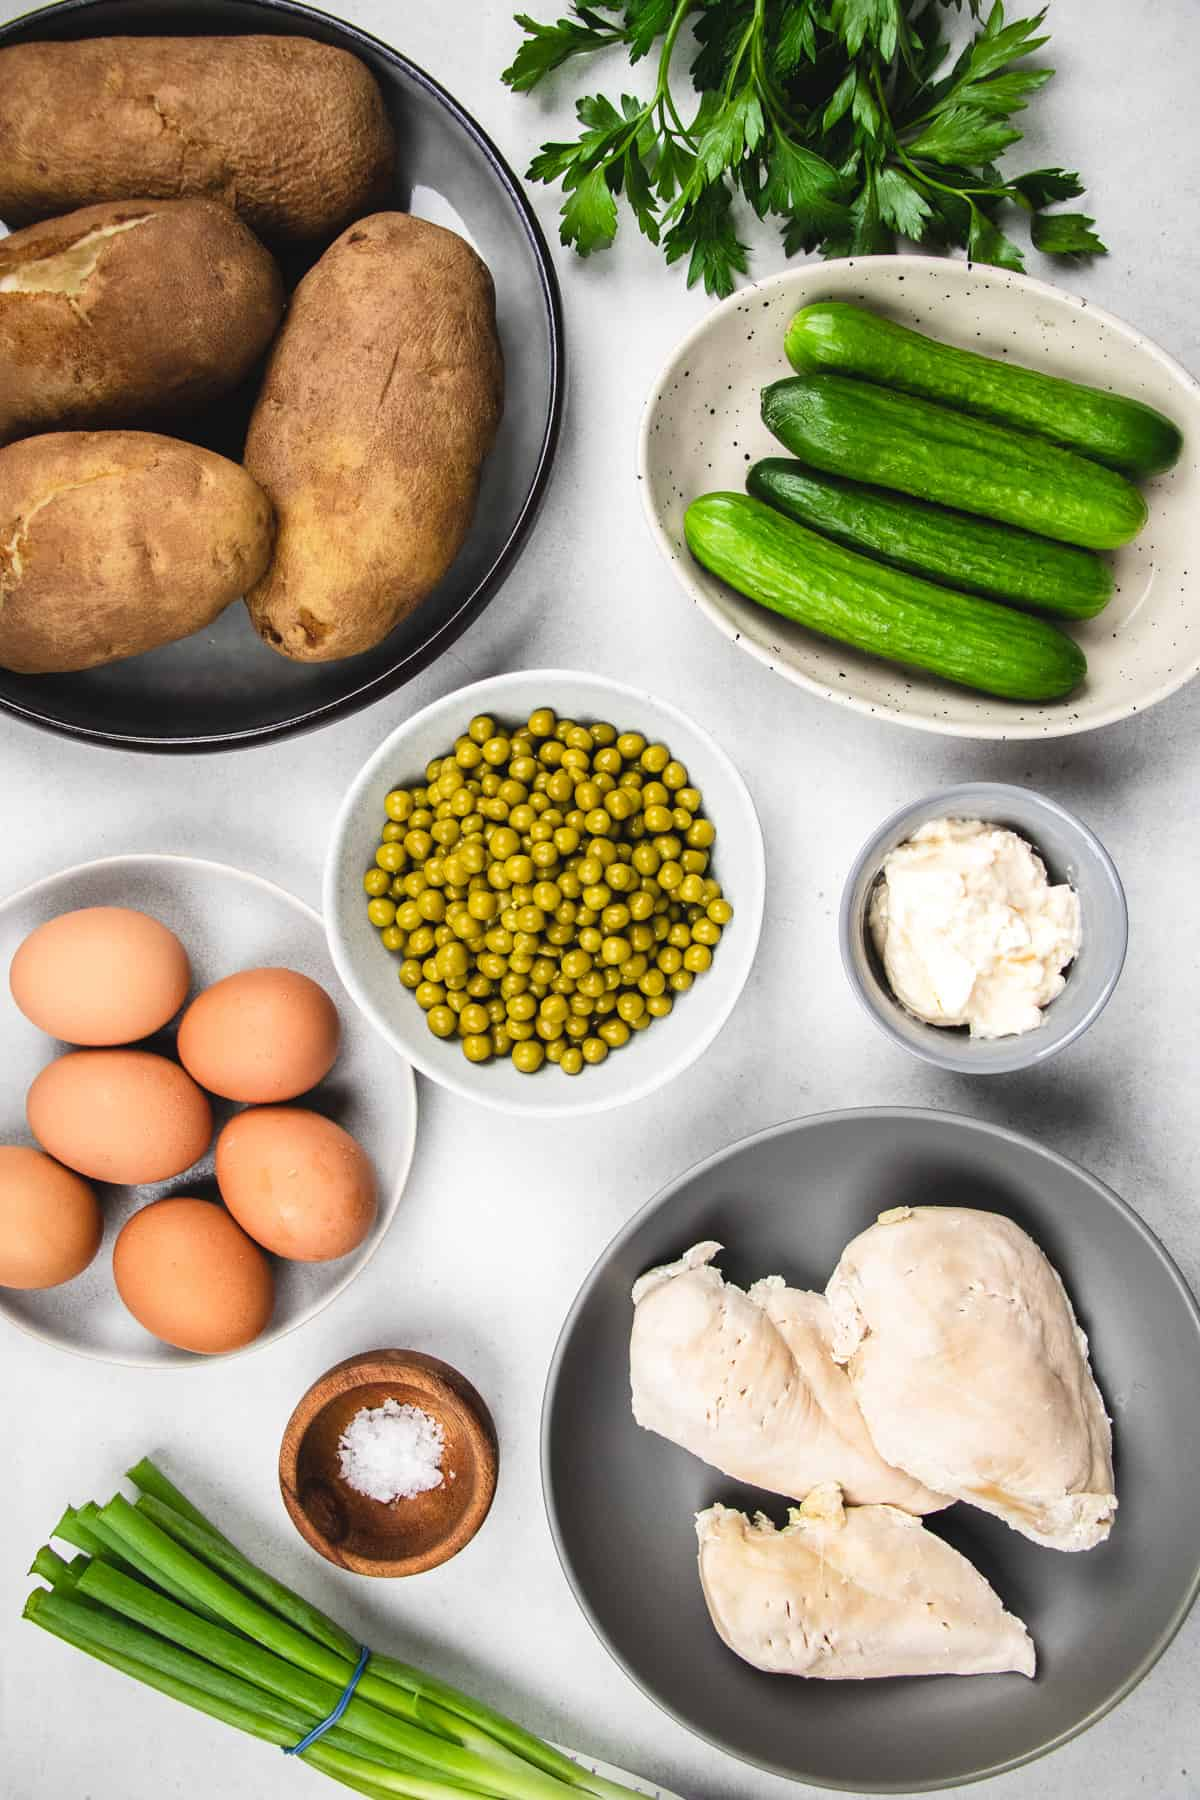 Ingredients for Olivie salad (chicken, potatoes, eggs, peas, cucumbers, green onion, parsley, and salt).